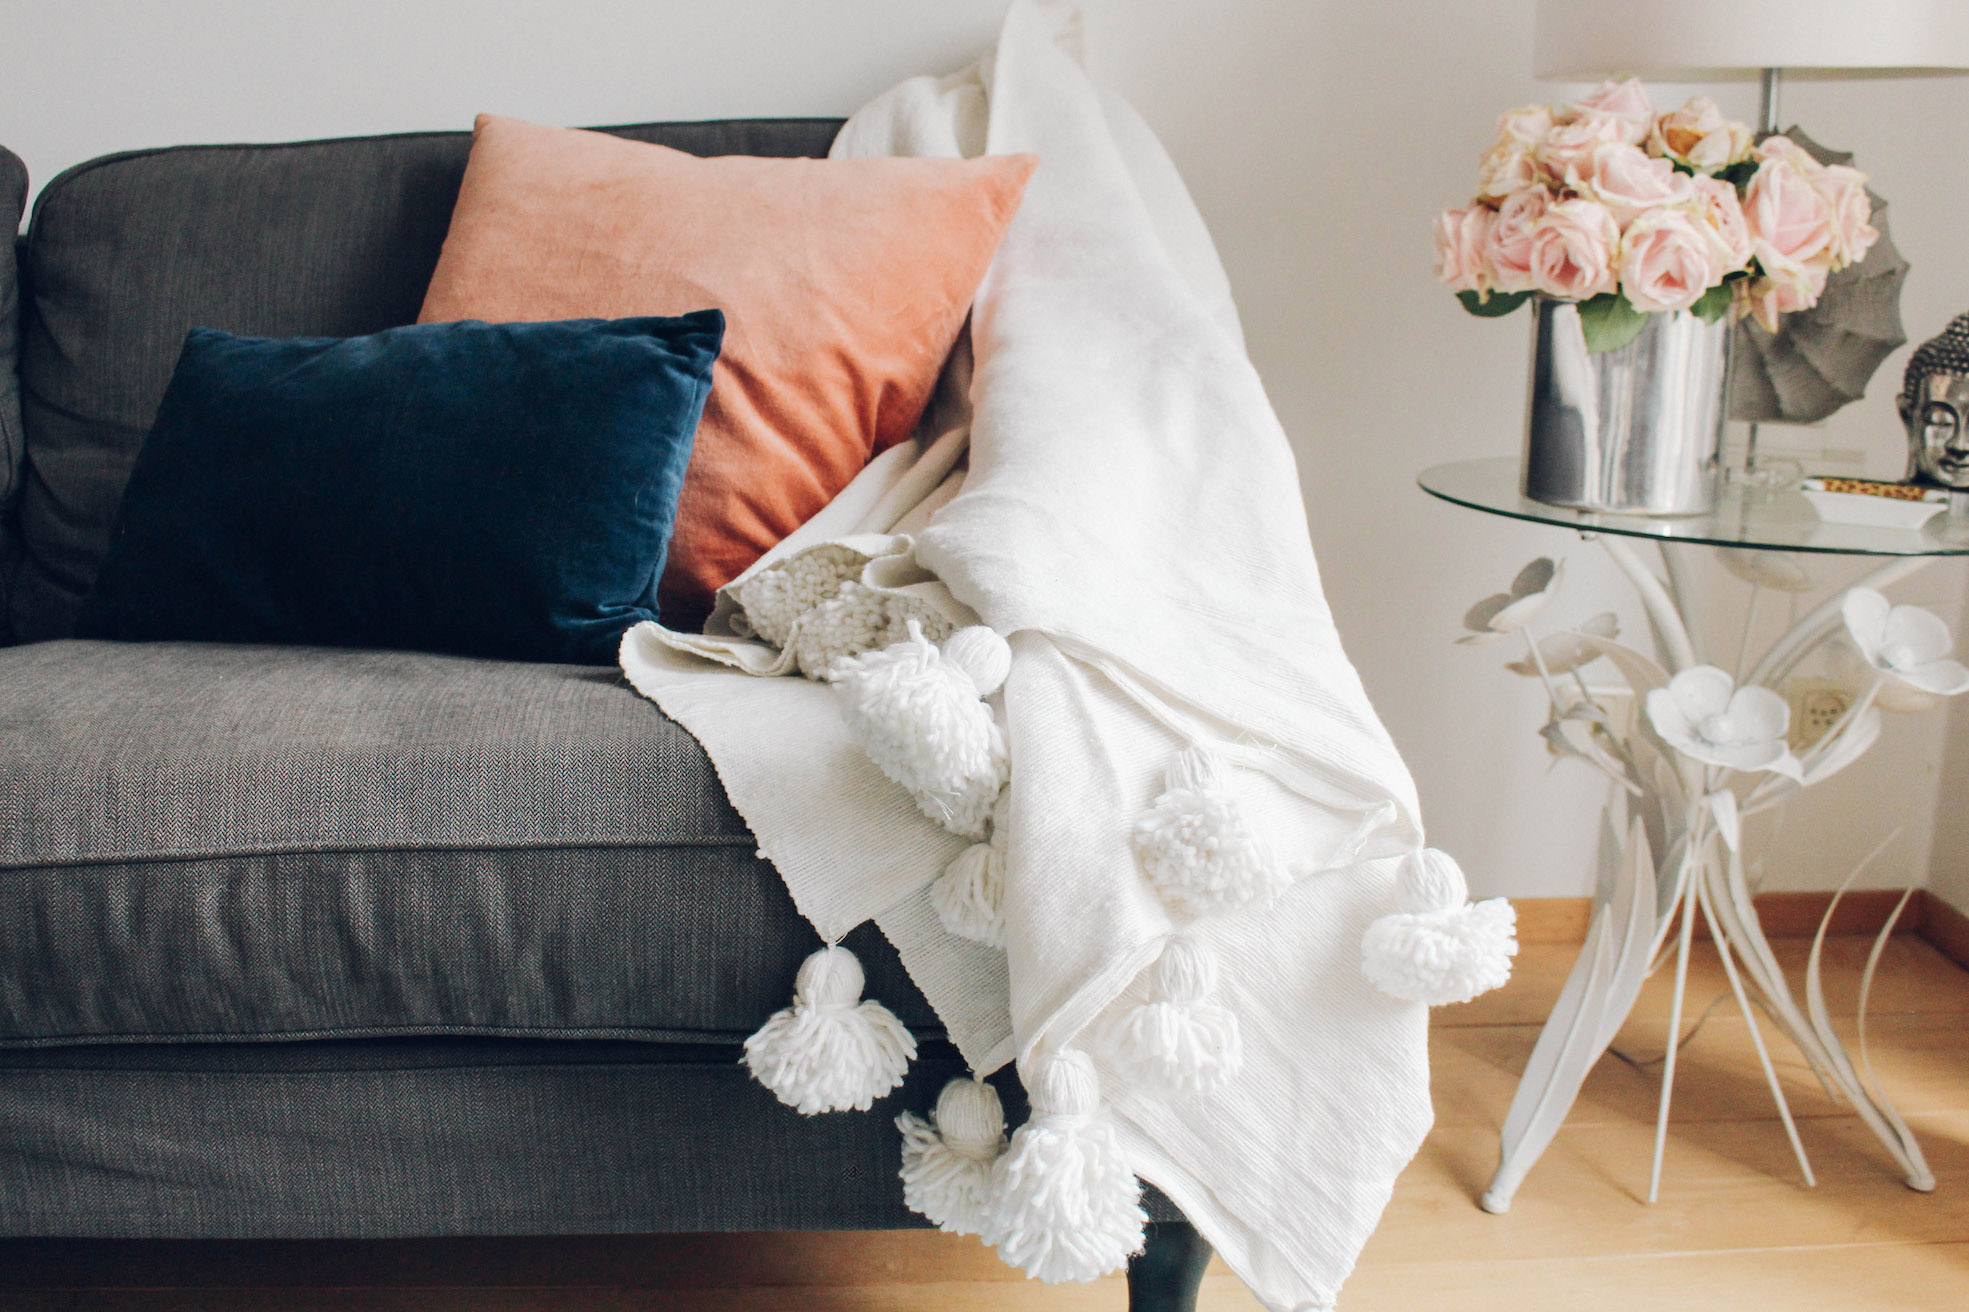 Floortjeloves, cozy weekend at home, cozy, home, interior, riadlifesyle, pom pom blanket, interior design, American vintage, 10days, y.a.s, Zara home, ikea